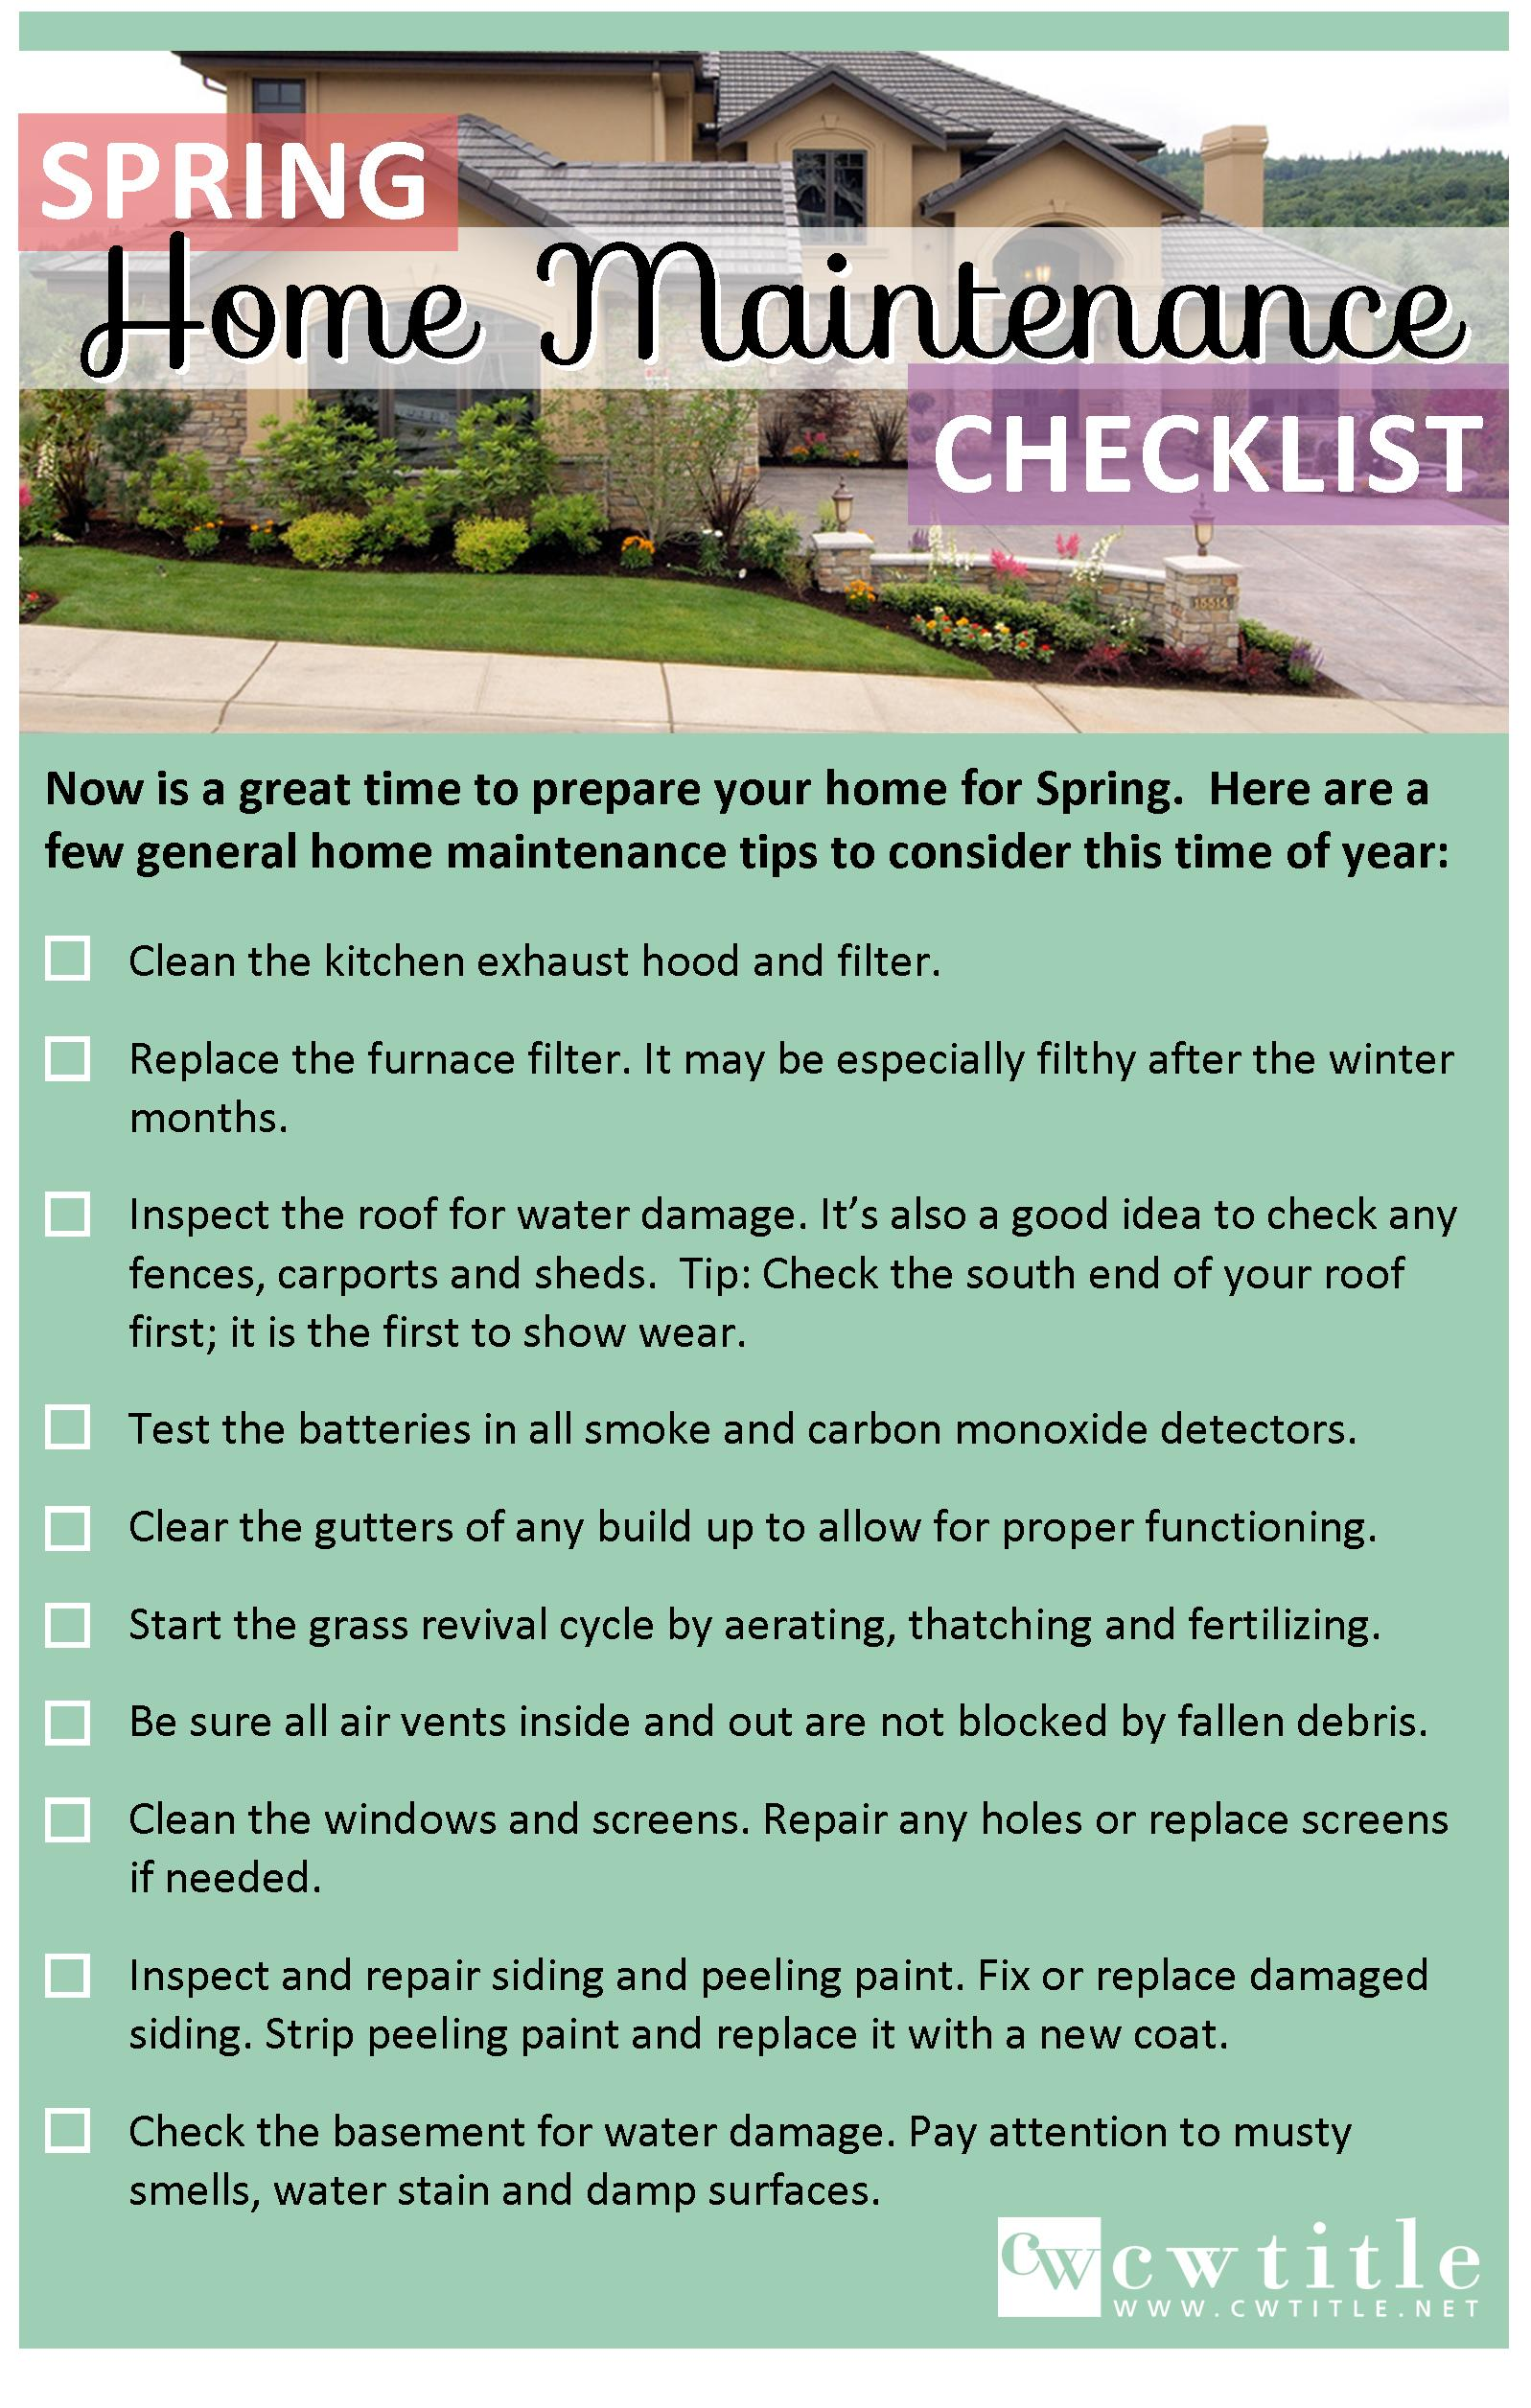 looking forward to spring | home maintenance tip | cw title | our